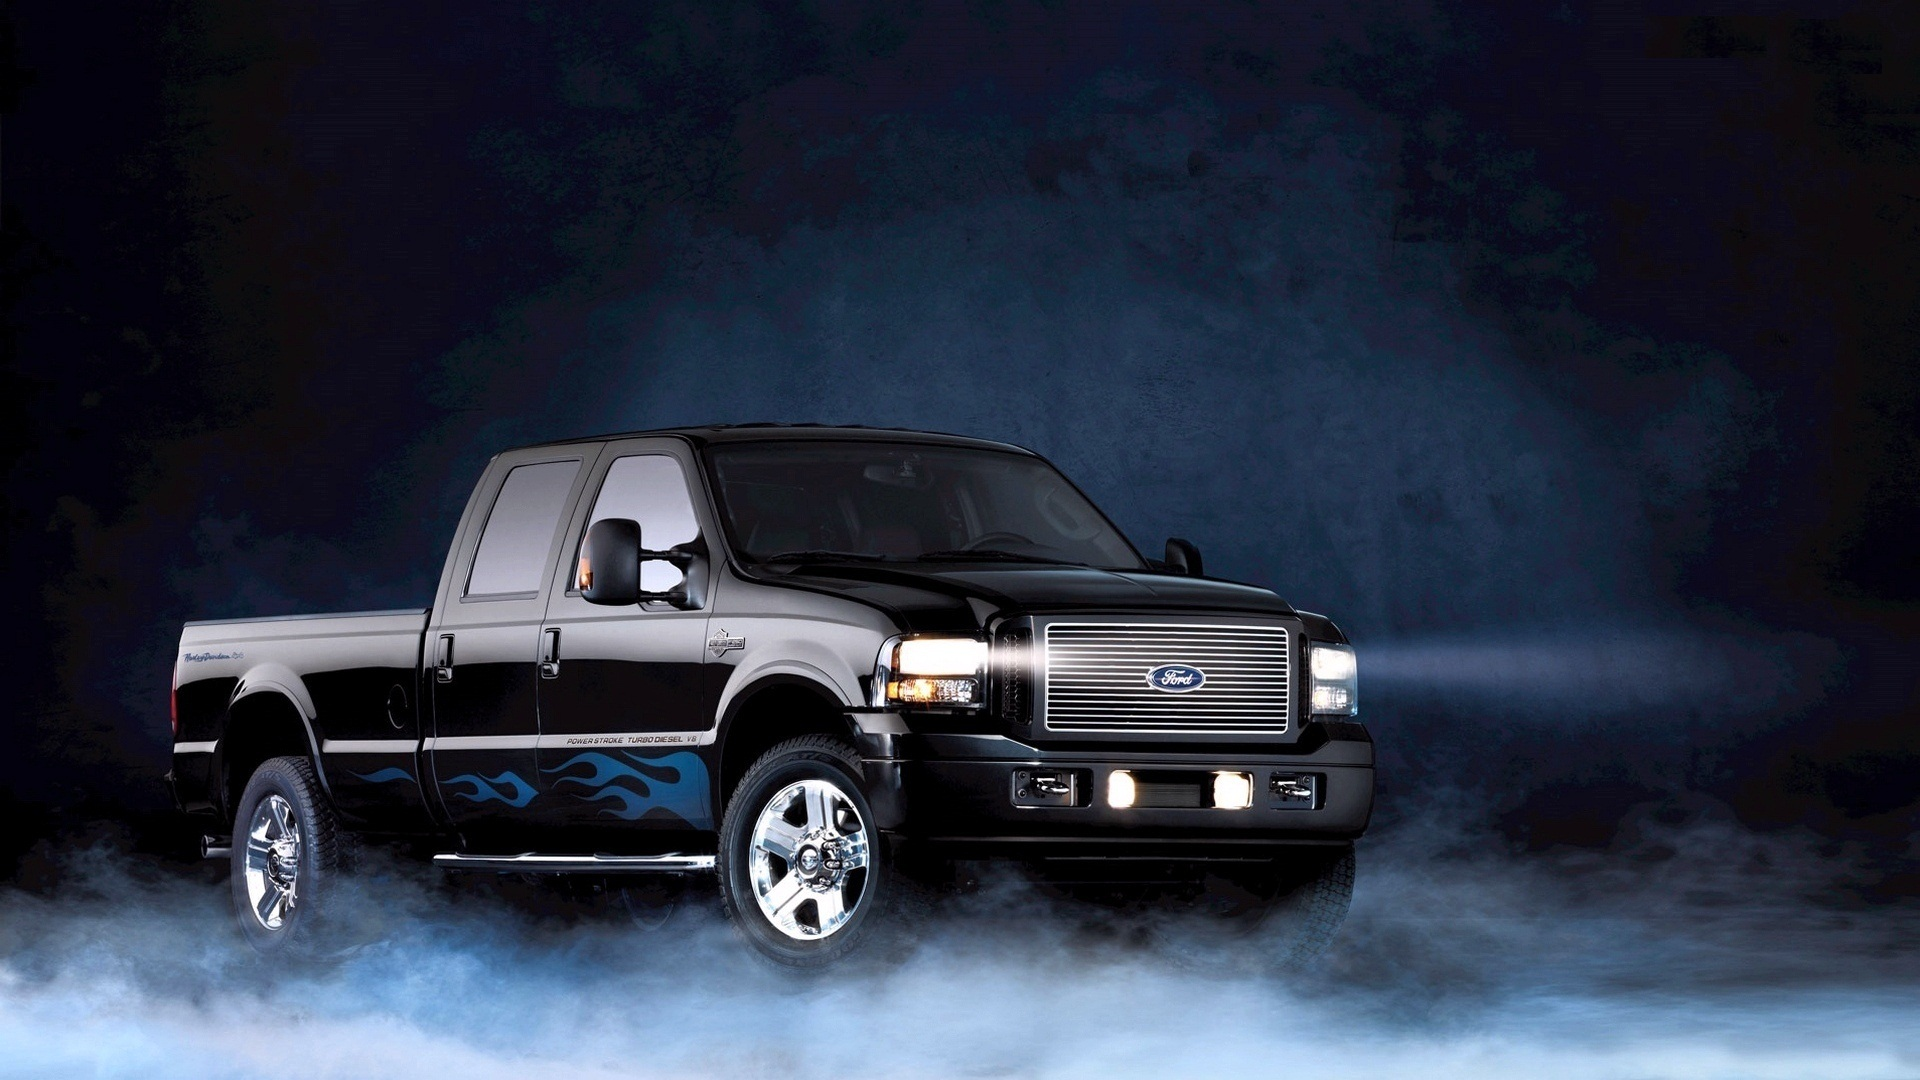 ford f 150 1920x1080 hd background my site. Black Bedroom Furniture Sets. Home Design Ideas